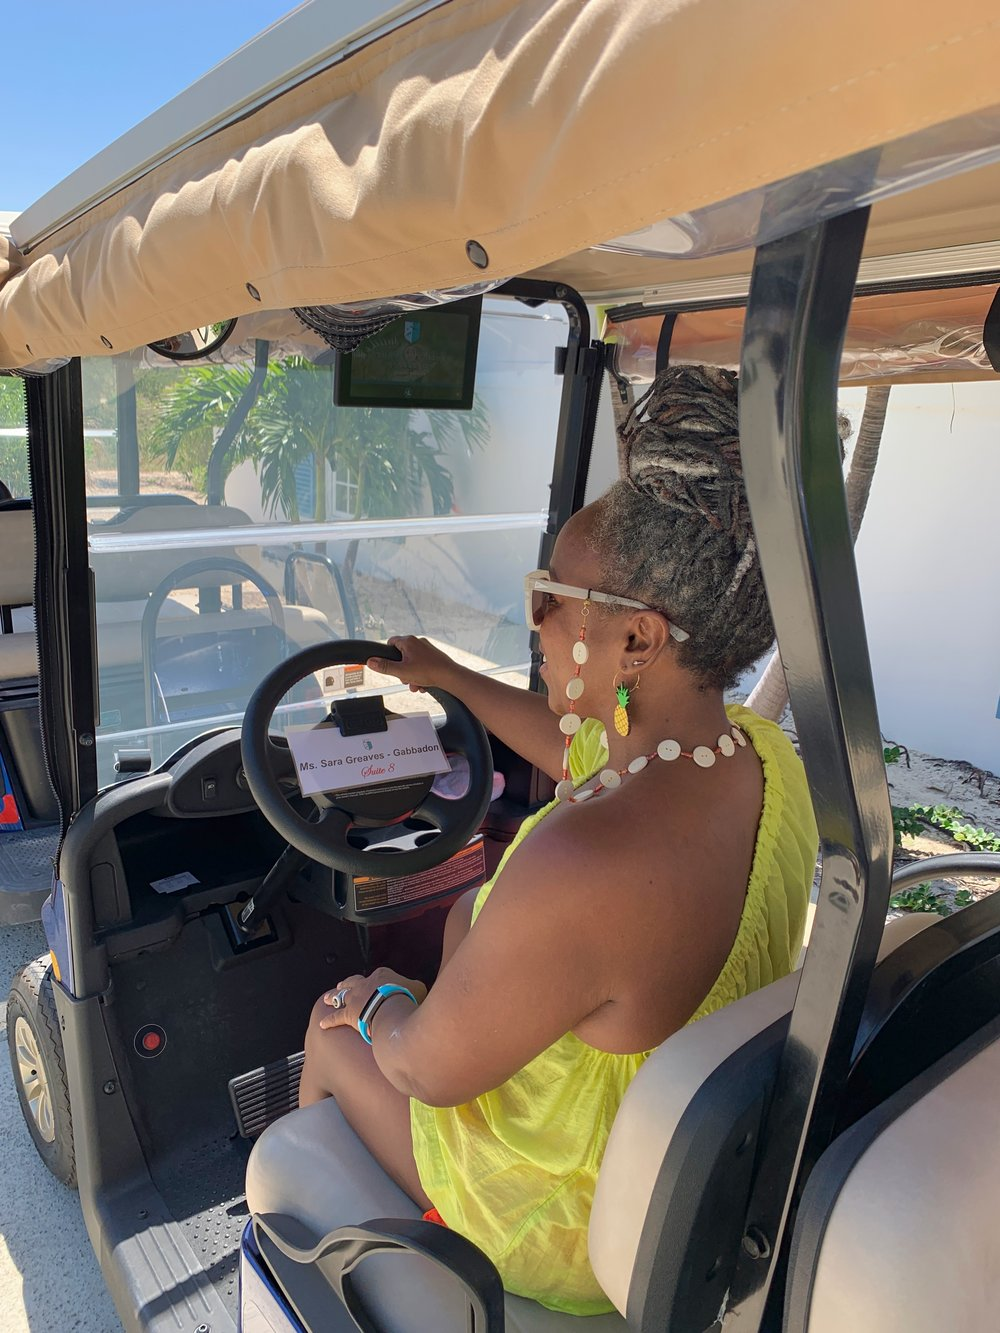 I'm ALL about that golf cart life!